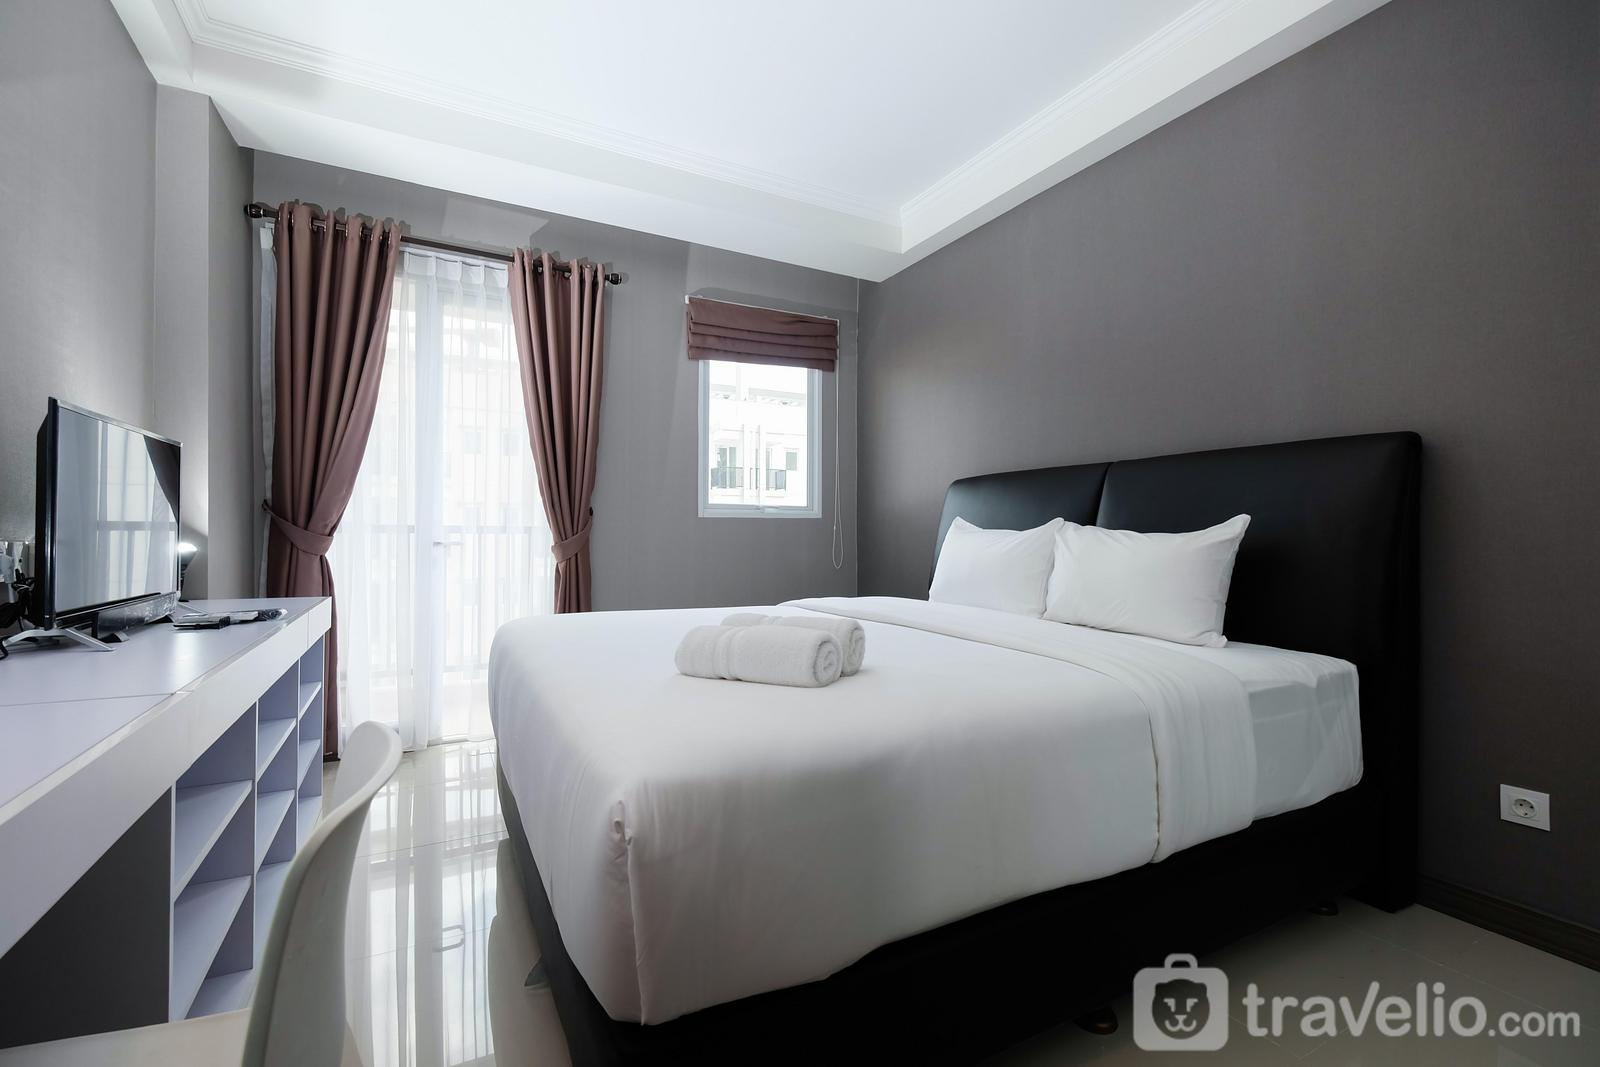 Signature Park Grande M.T Haryono - Well Designed Studio Apartment Signature Park Grande By Travelio